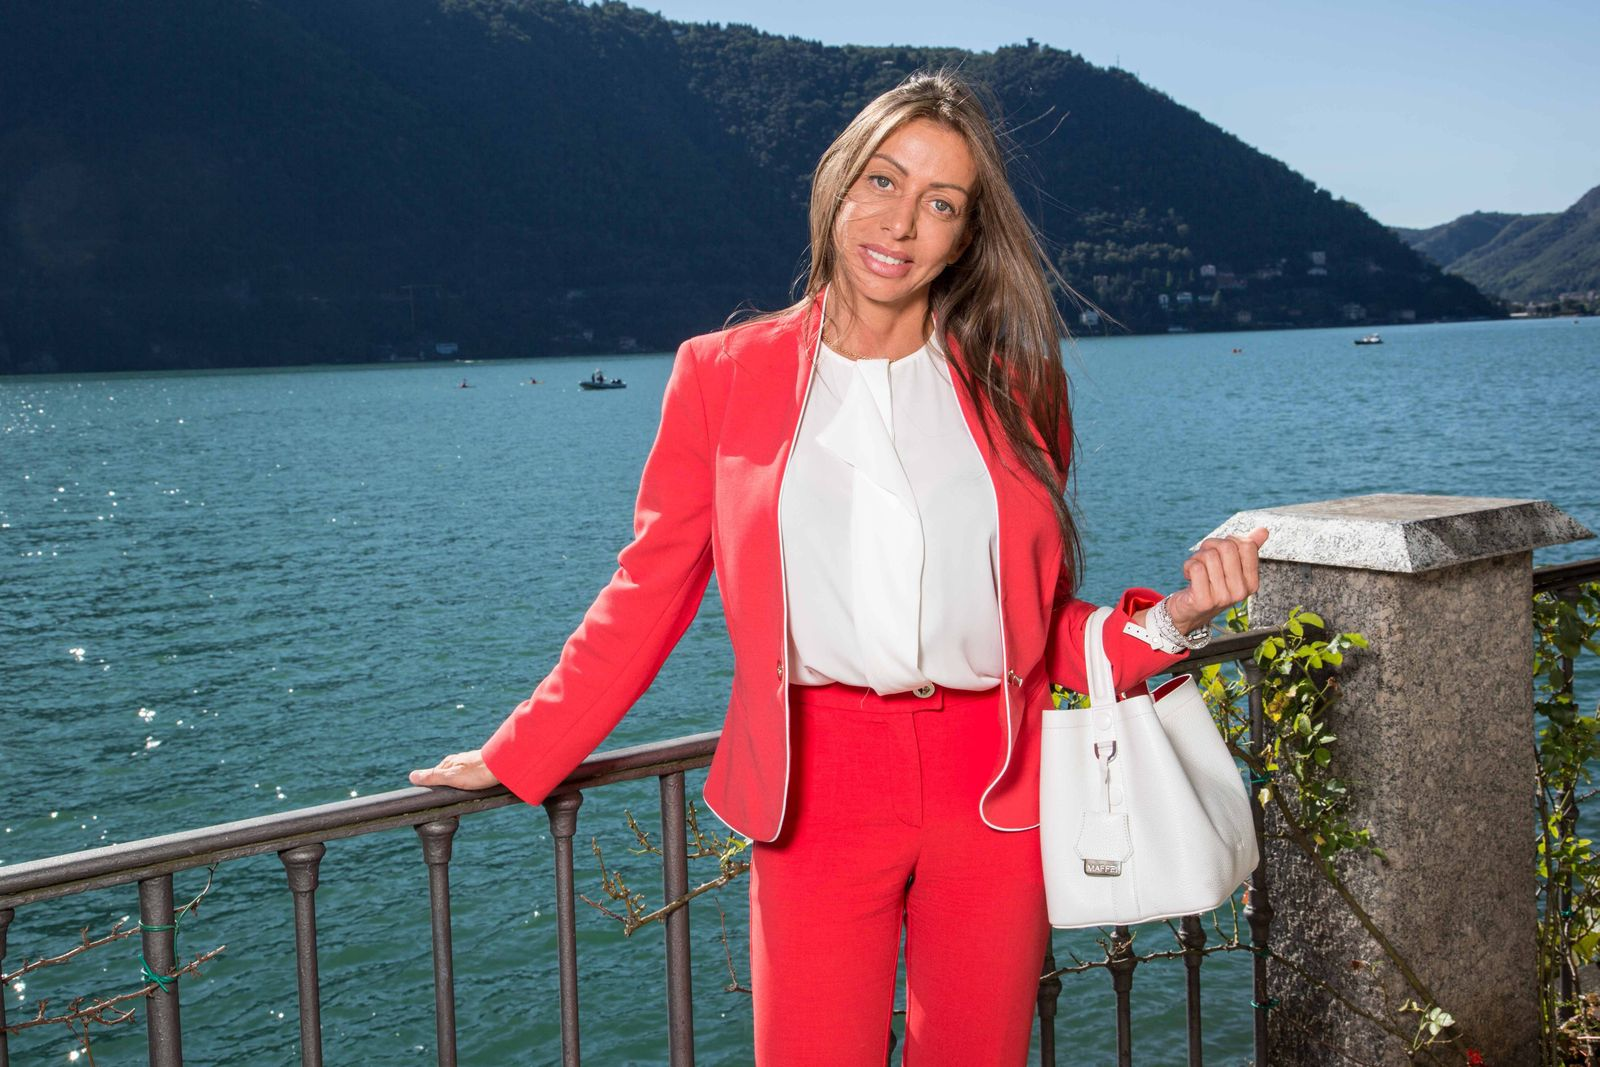 September 6 2015 Italia The senator Mariarosaria Rossi wearing a suit by Elisabetta Franchi and